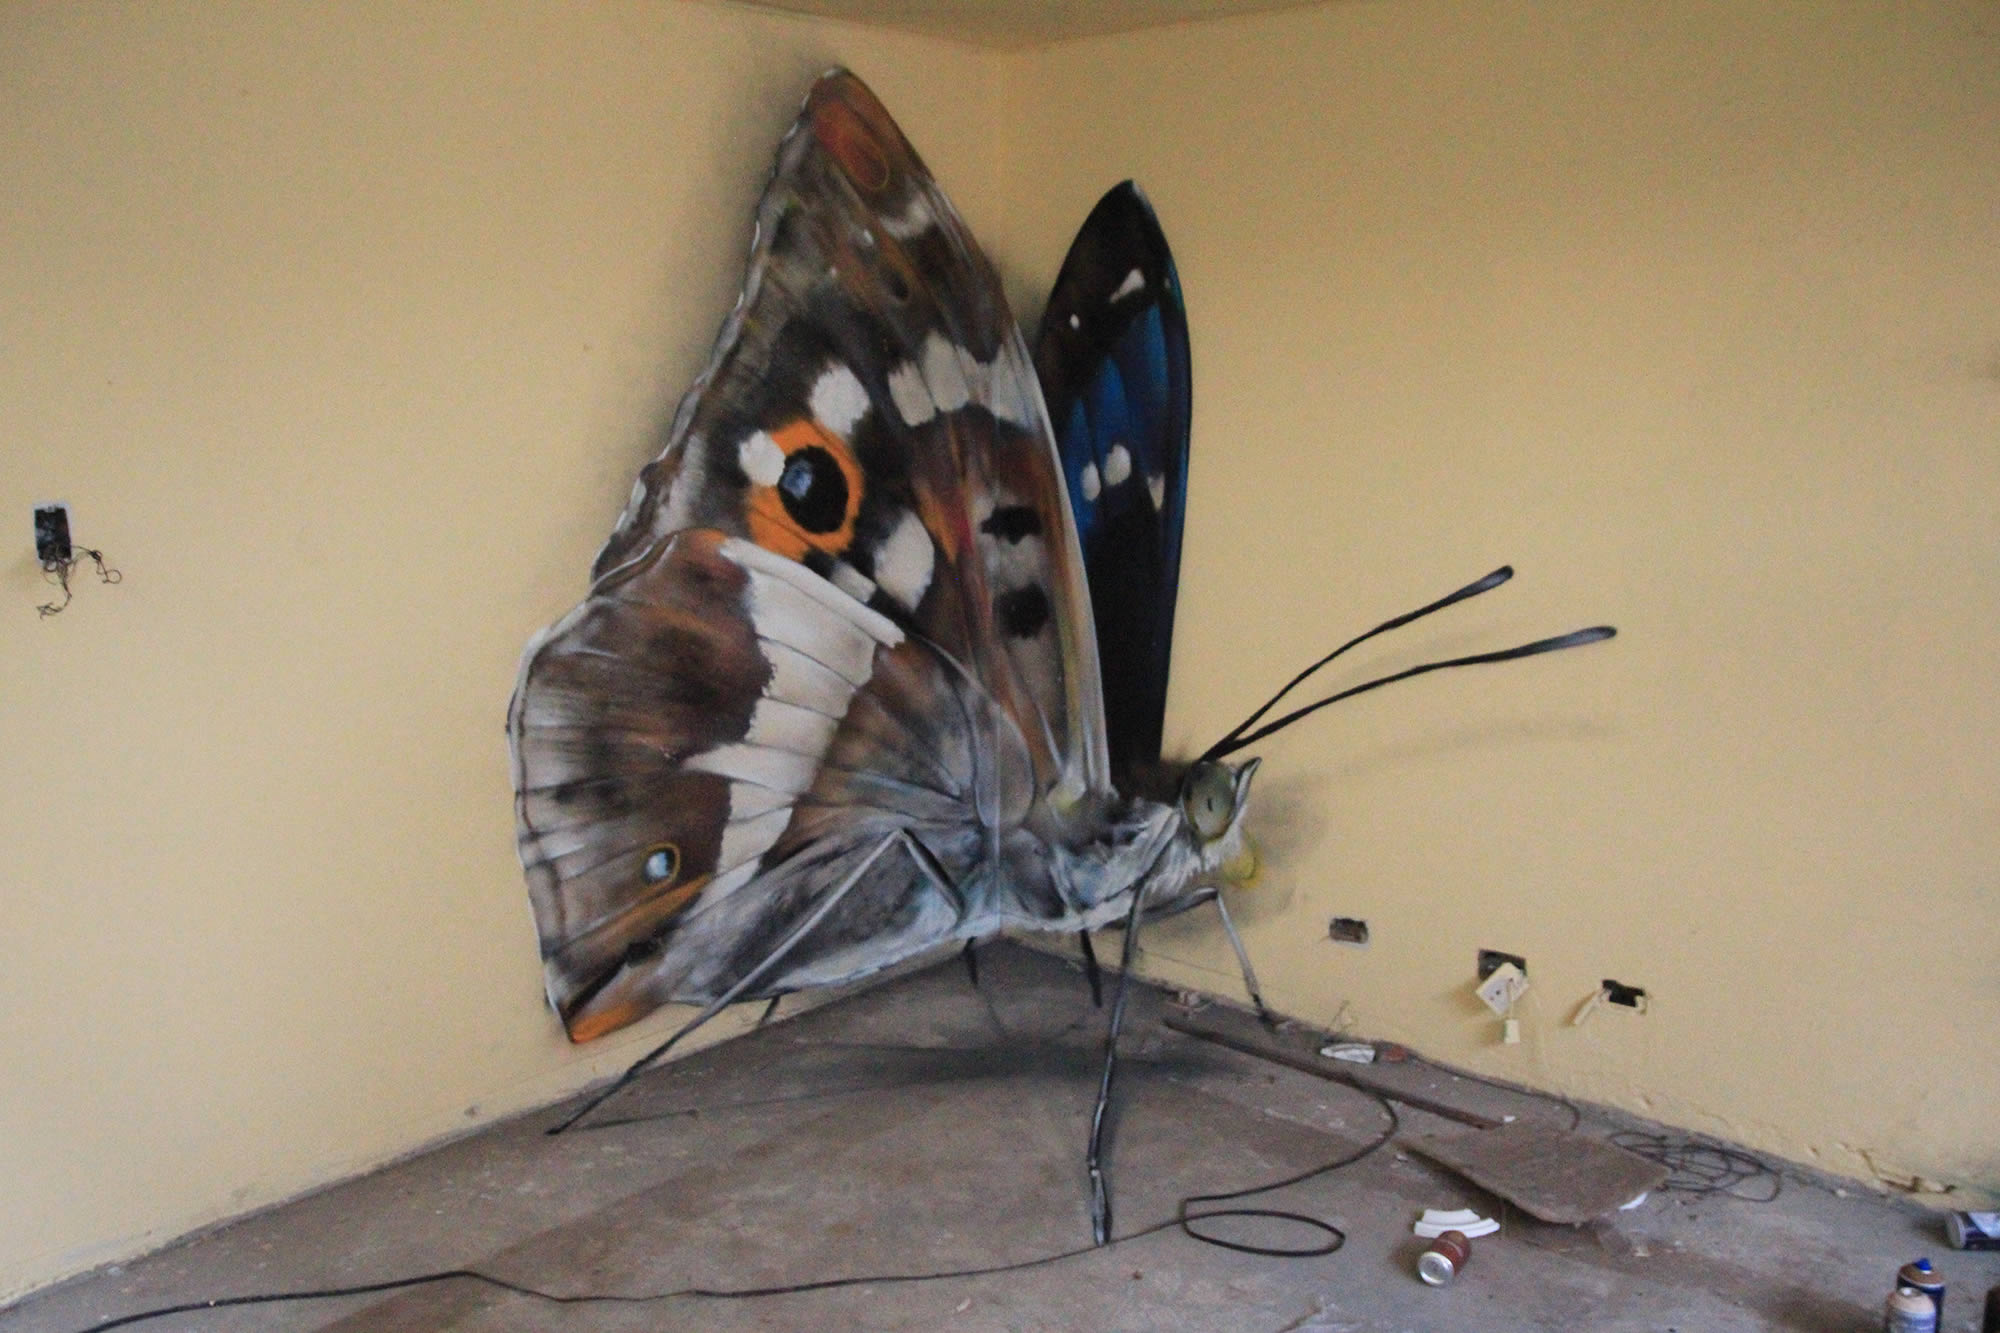 3D Insects and Giant Birds: The Graffiti Art of Mantra